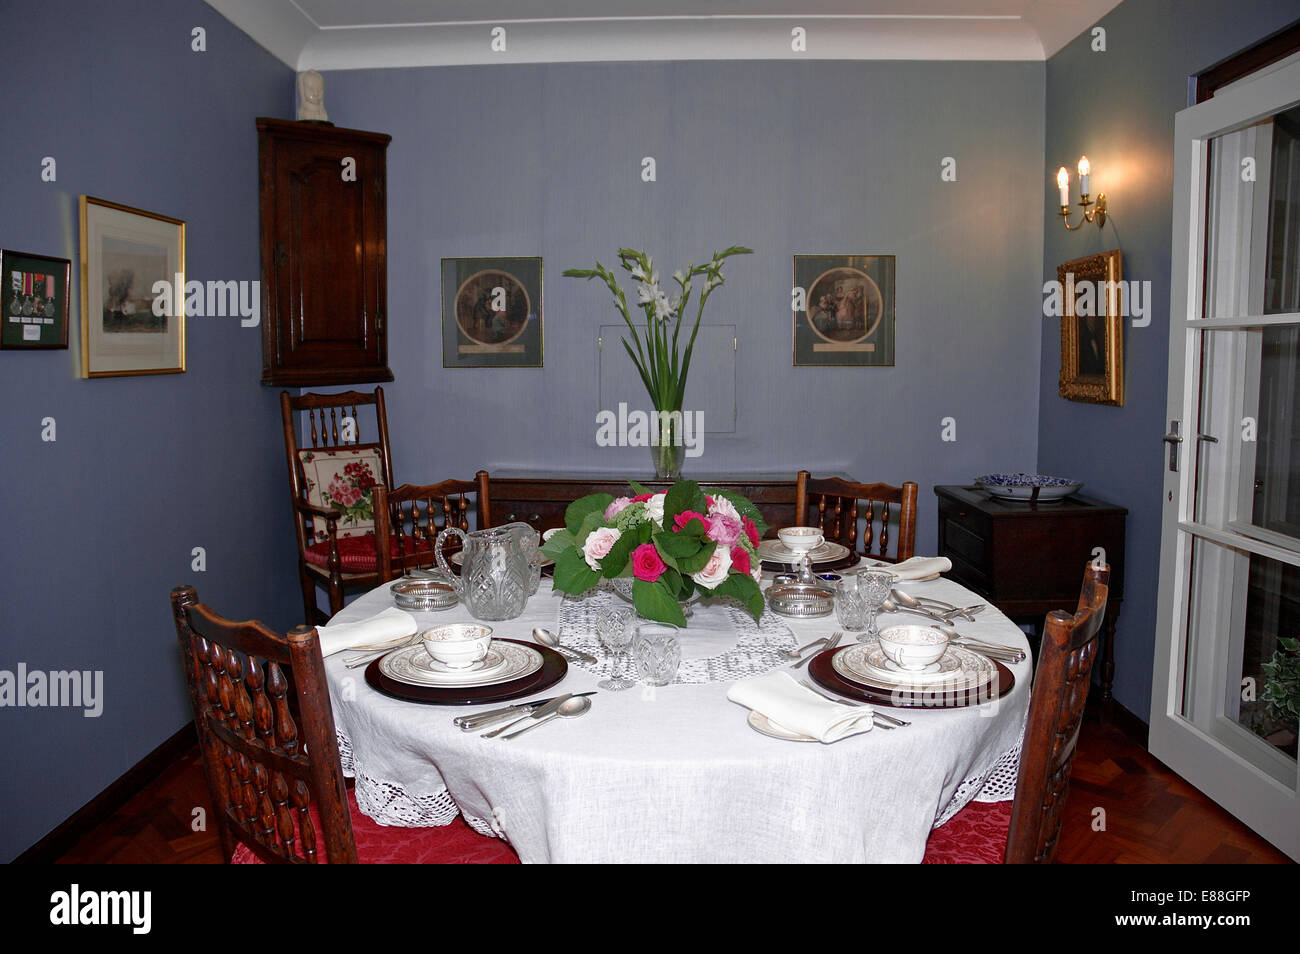 Place settings and white cloth on table in small blue diningroom with wall lights - Stock Image